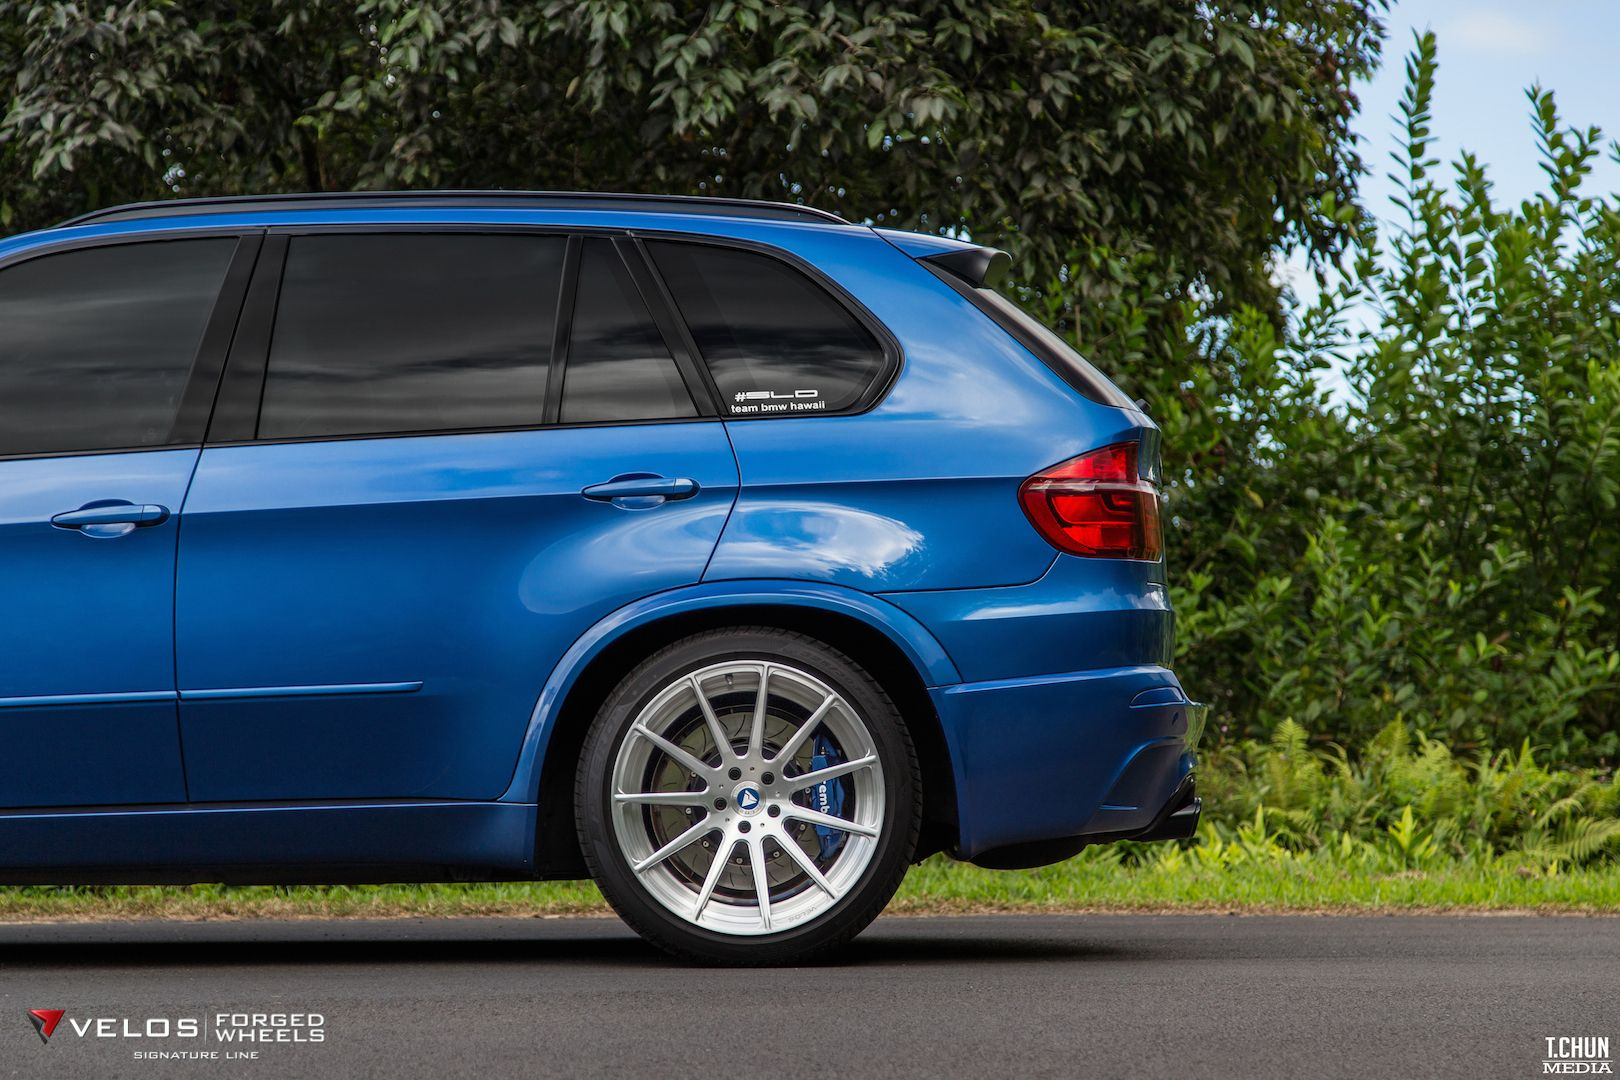 Bmw e70 x5 m monster provocative strong muscle bmw e70 x5 bmw e70 x5 m monster provocative strong muscle vanachro Gallery